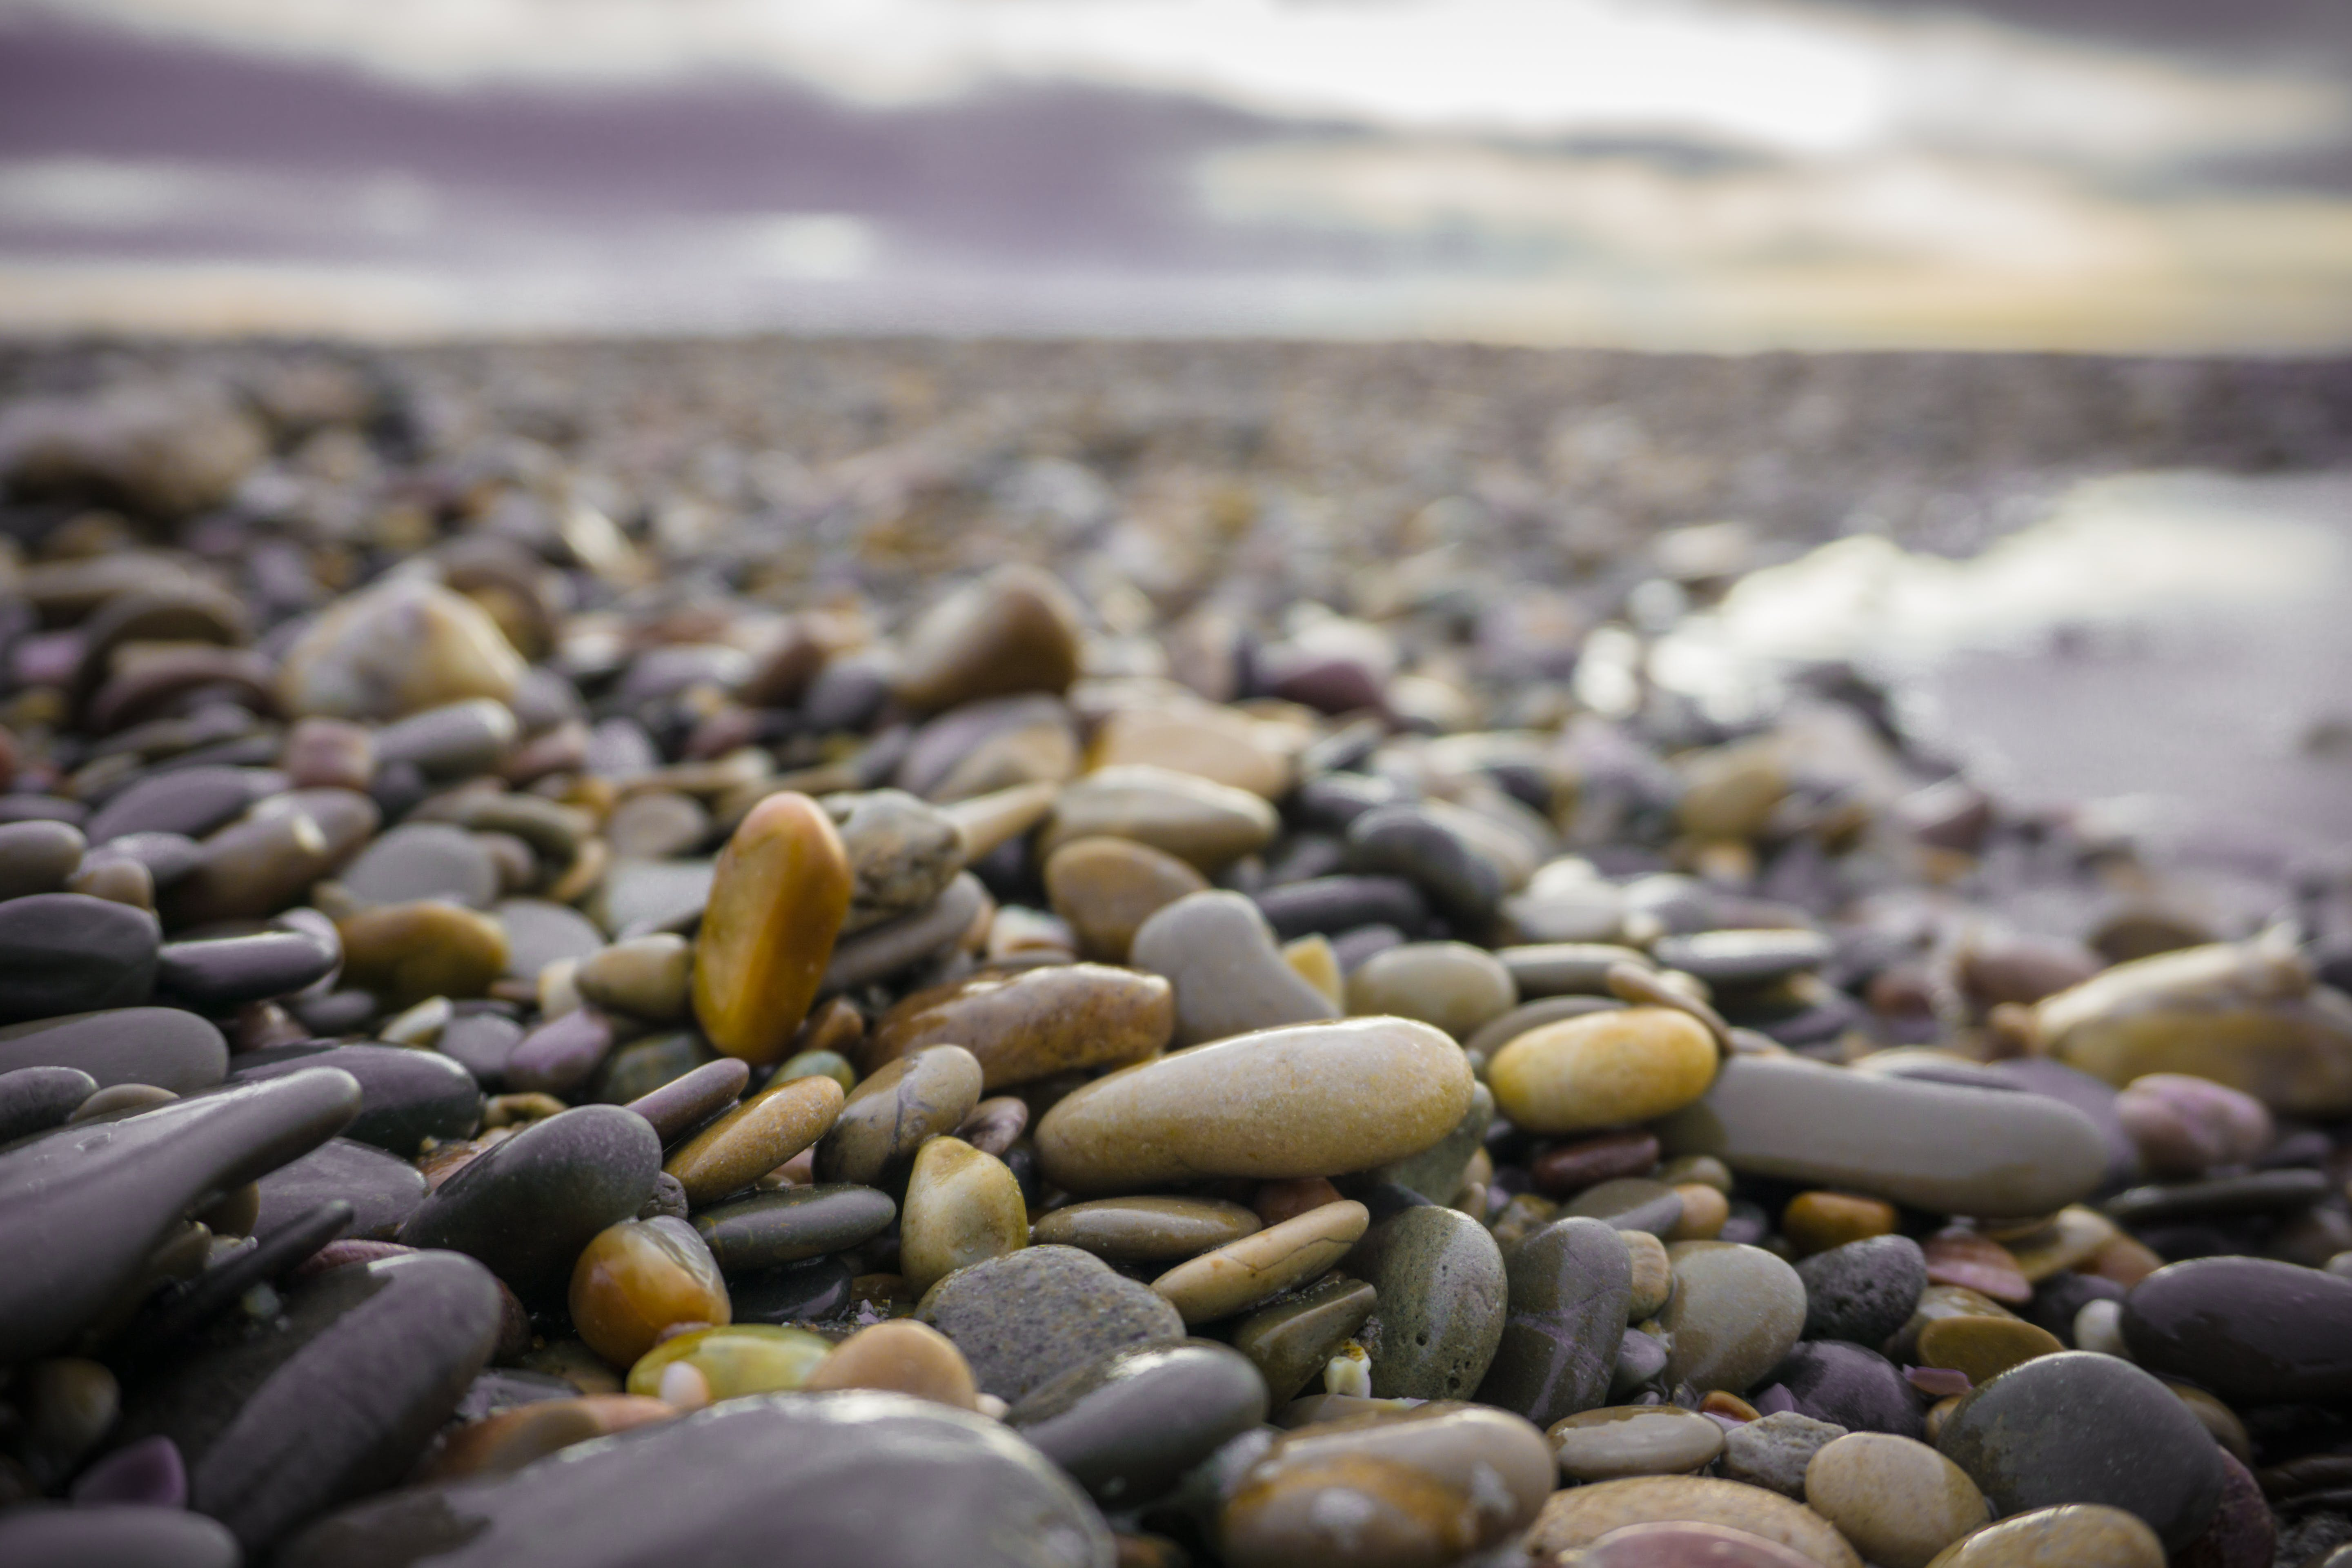 Close-Up Photography of Wet Stones